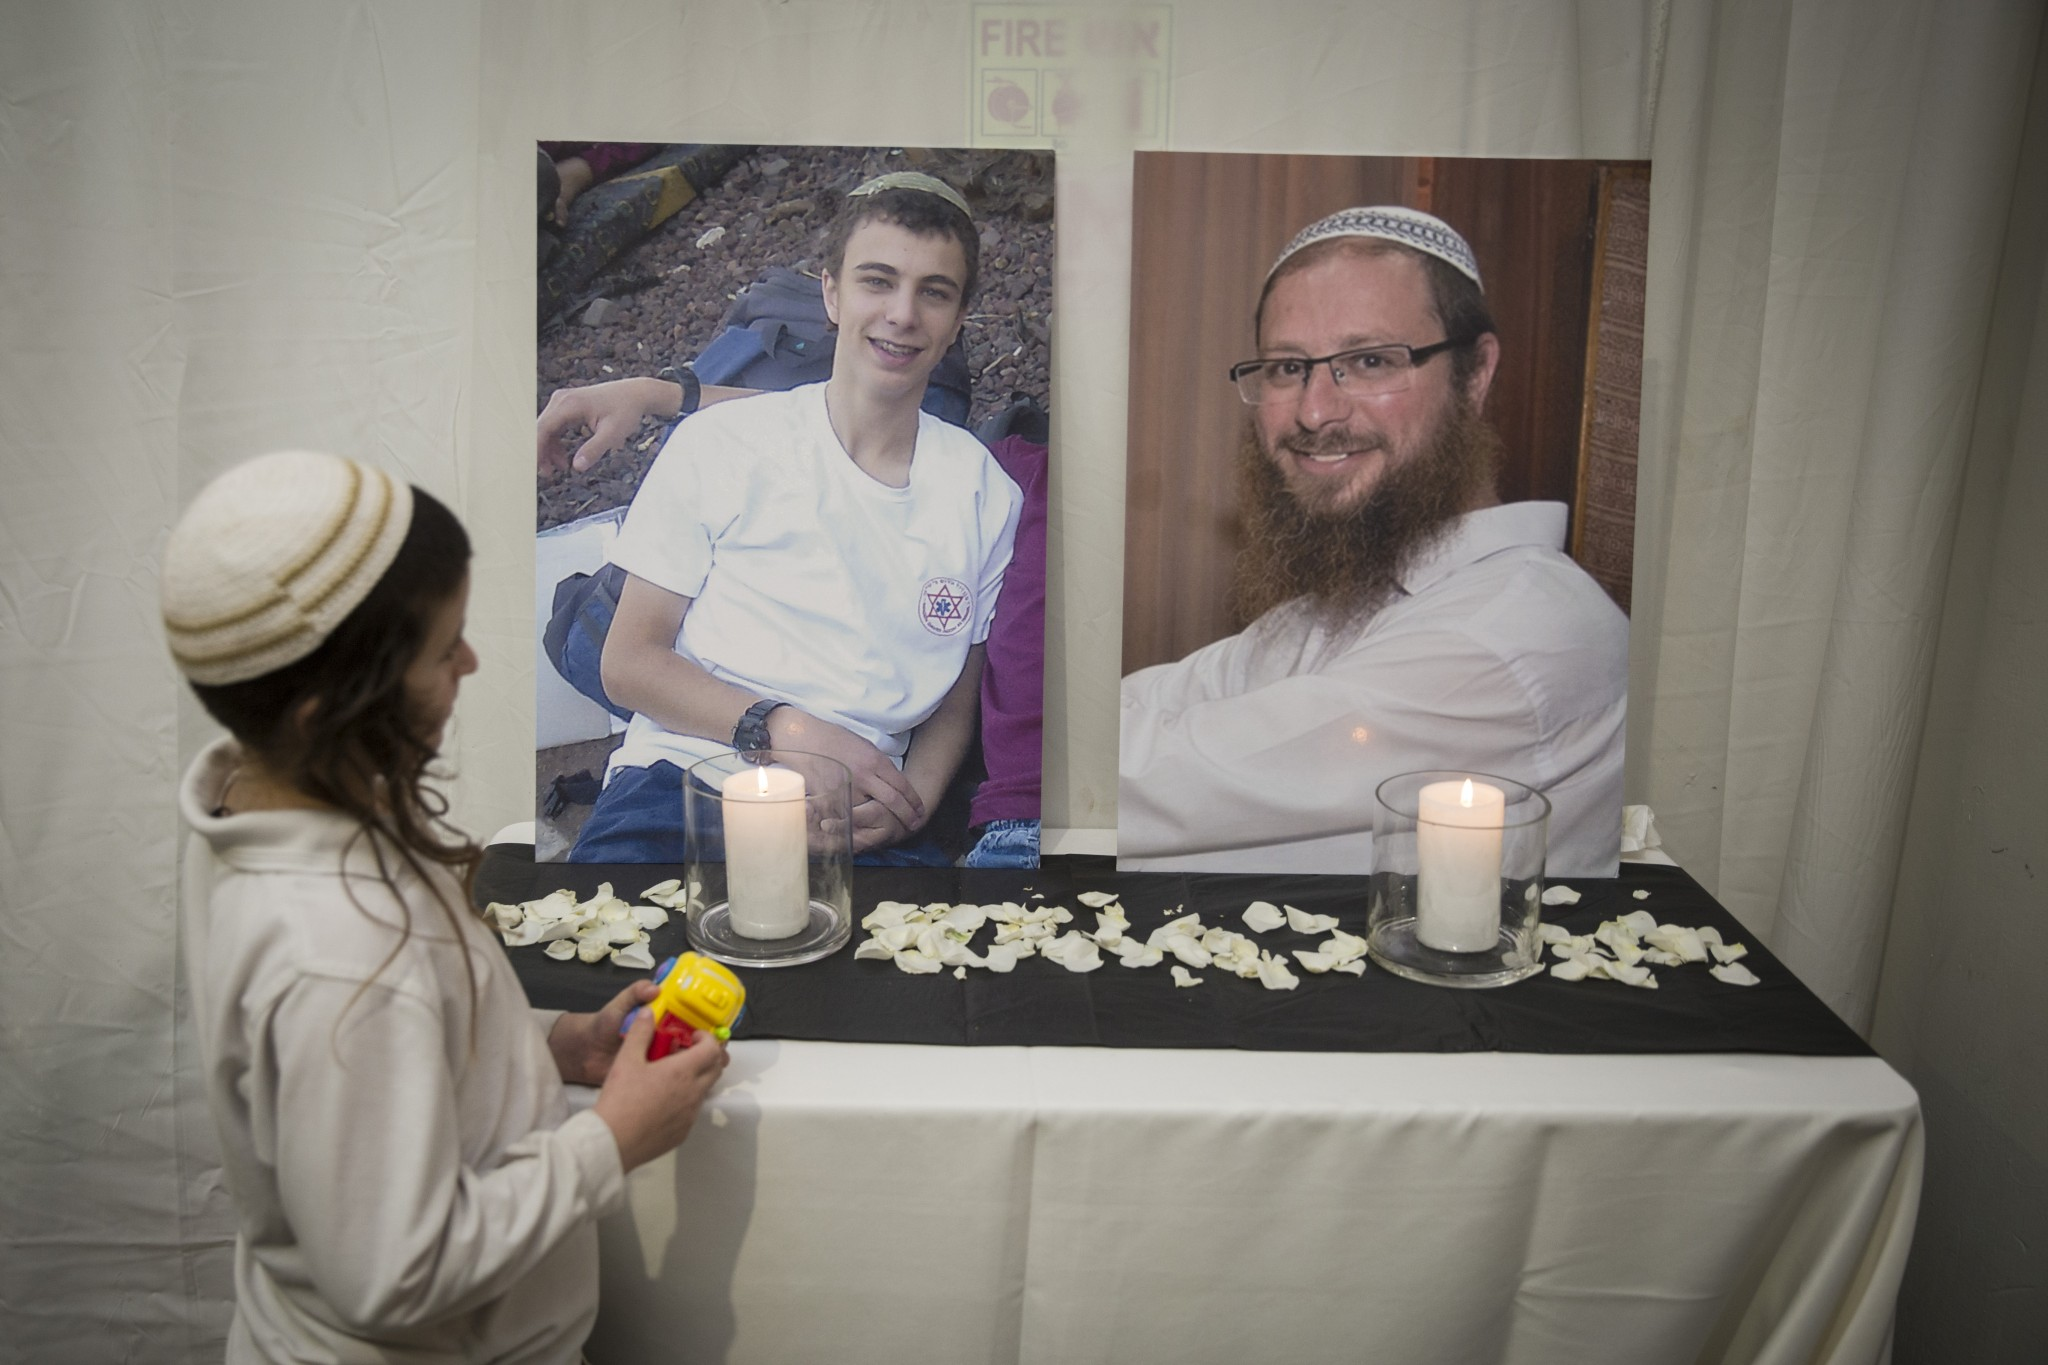 Pictures of Rabbi Yaakov Litman and Netanel Litman, the bride's father and brother, were displayed with memorial candles at her wedding to Ariel Beigel. Photo by Hadas Parush/FLASH90